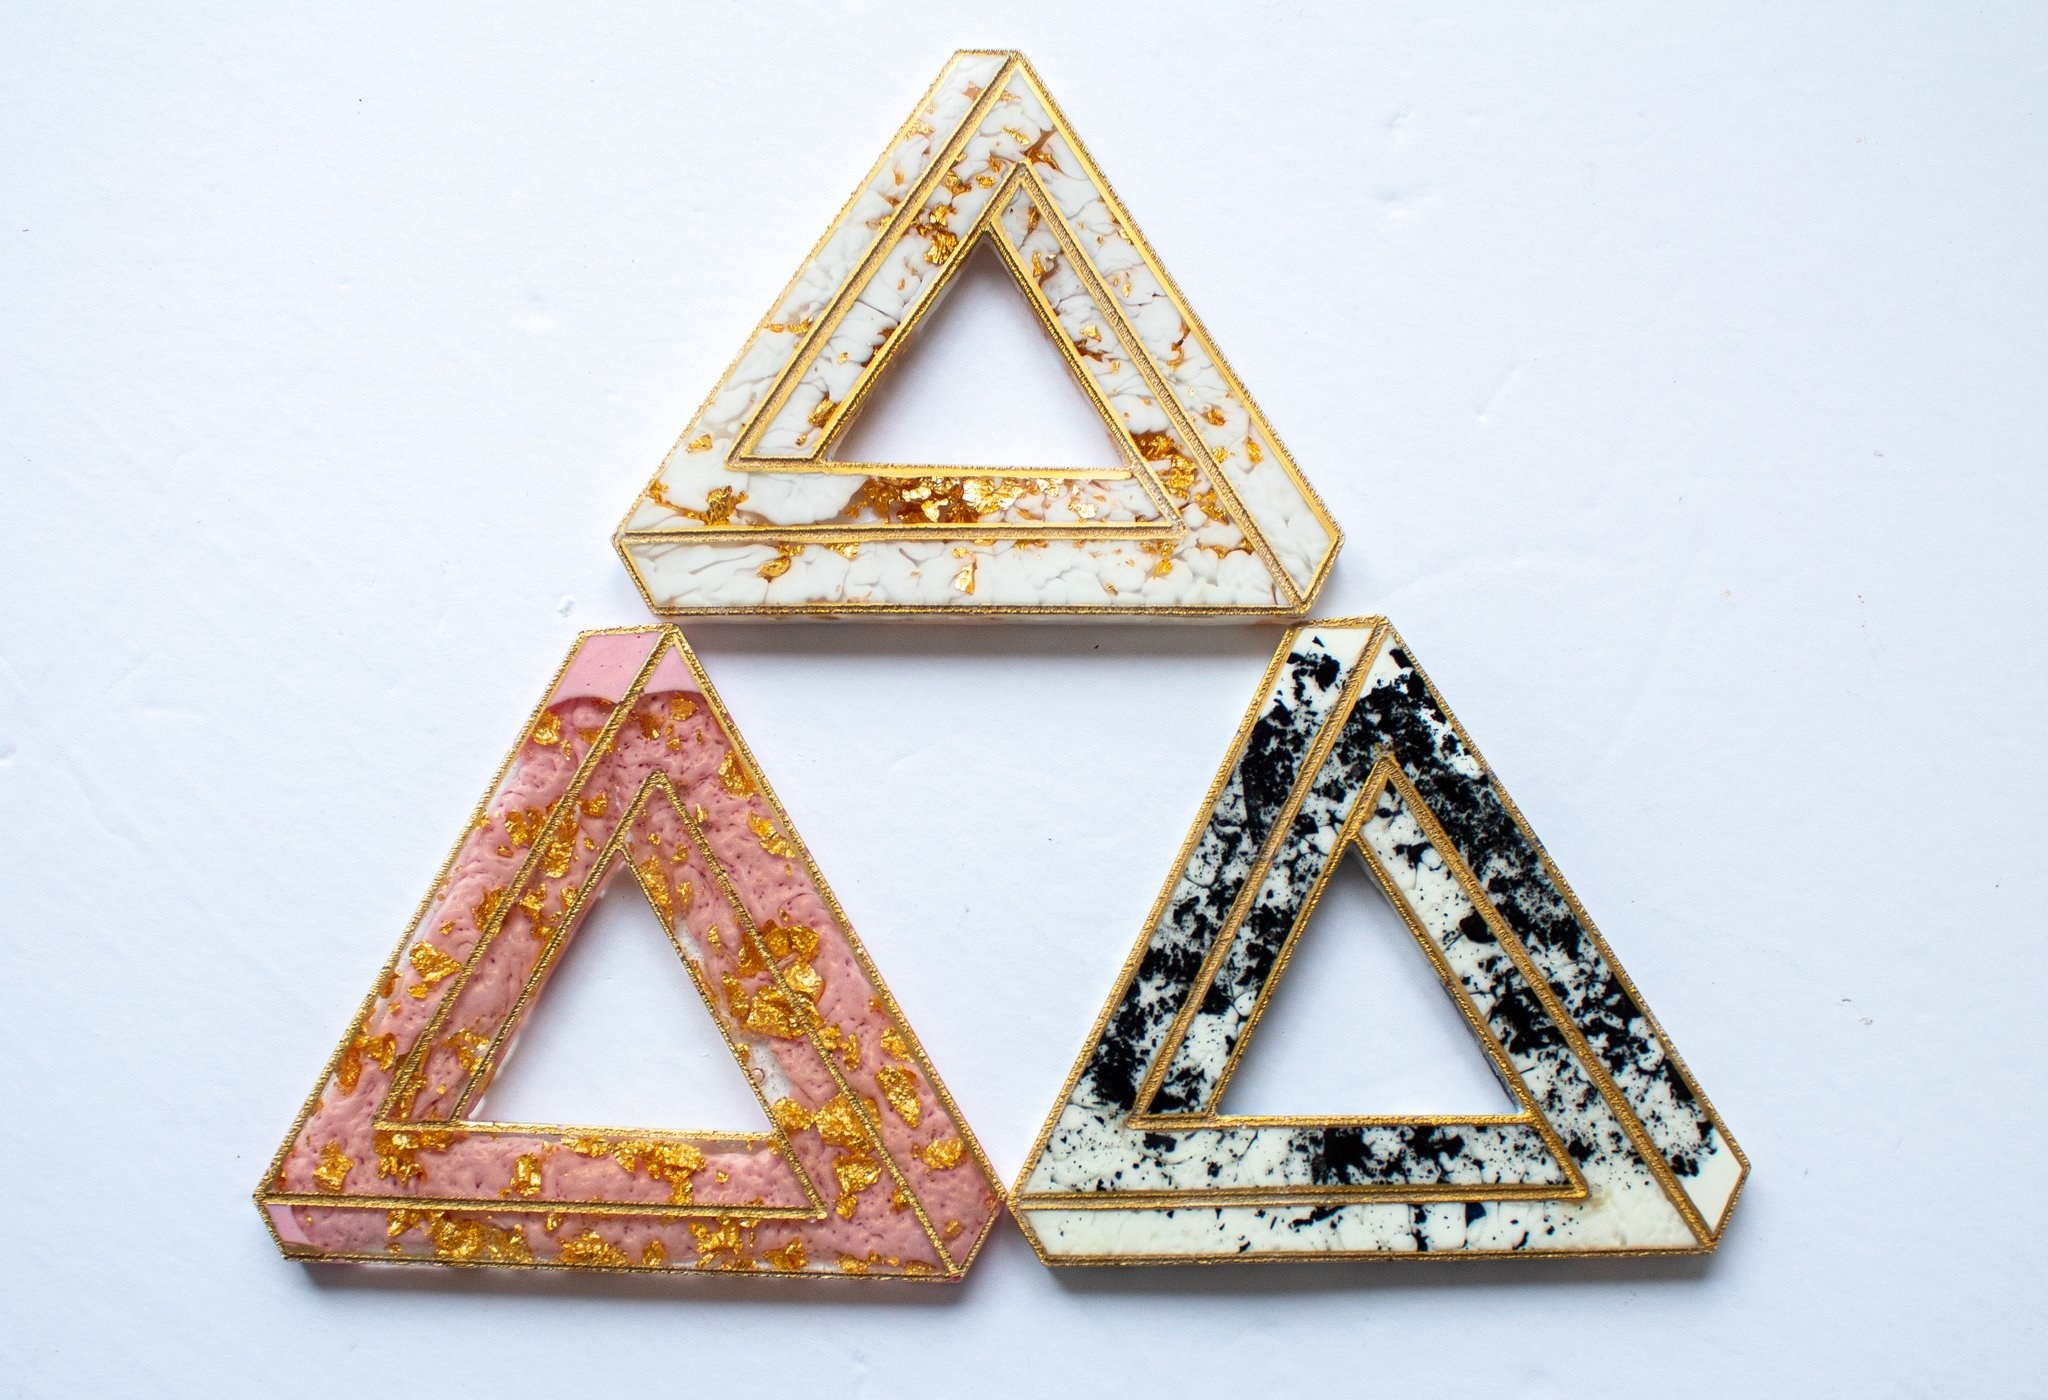 three impossible triangle shapes in pink, white, and black